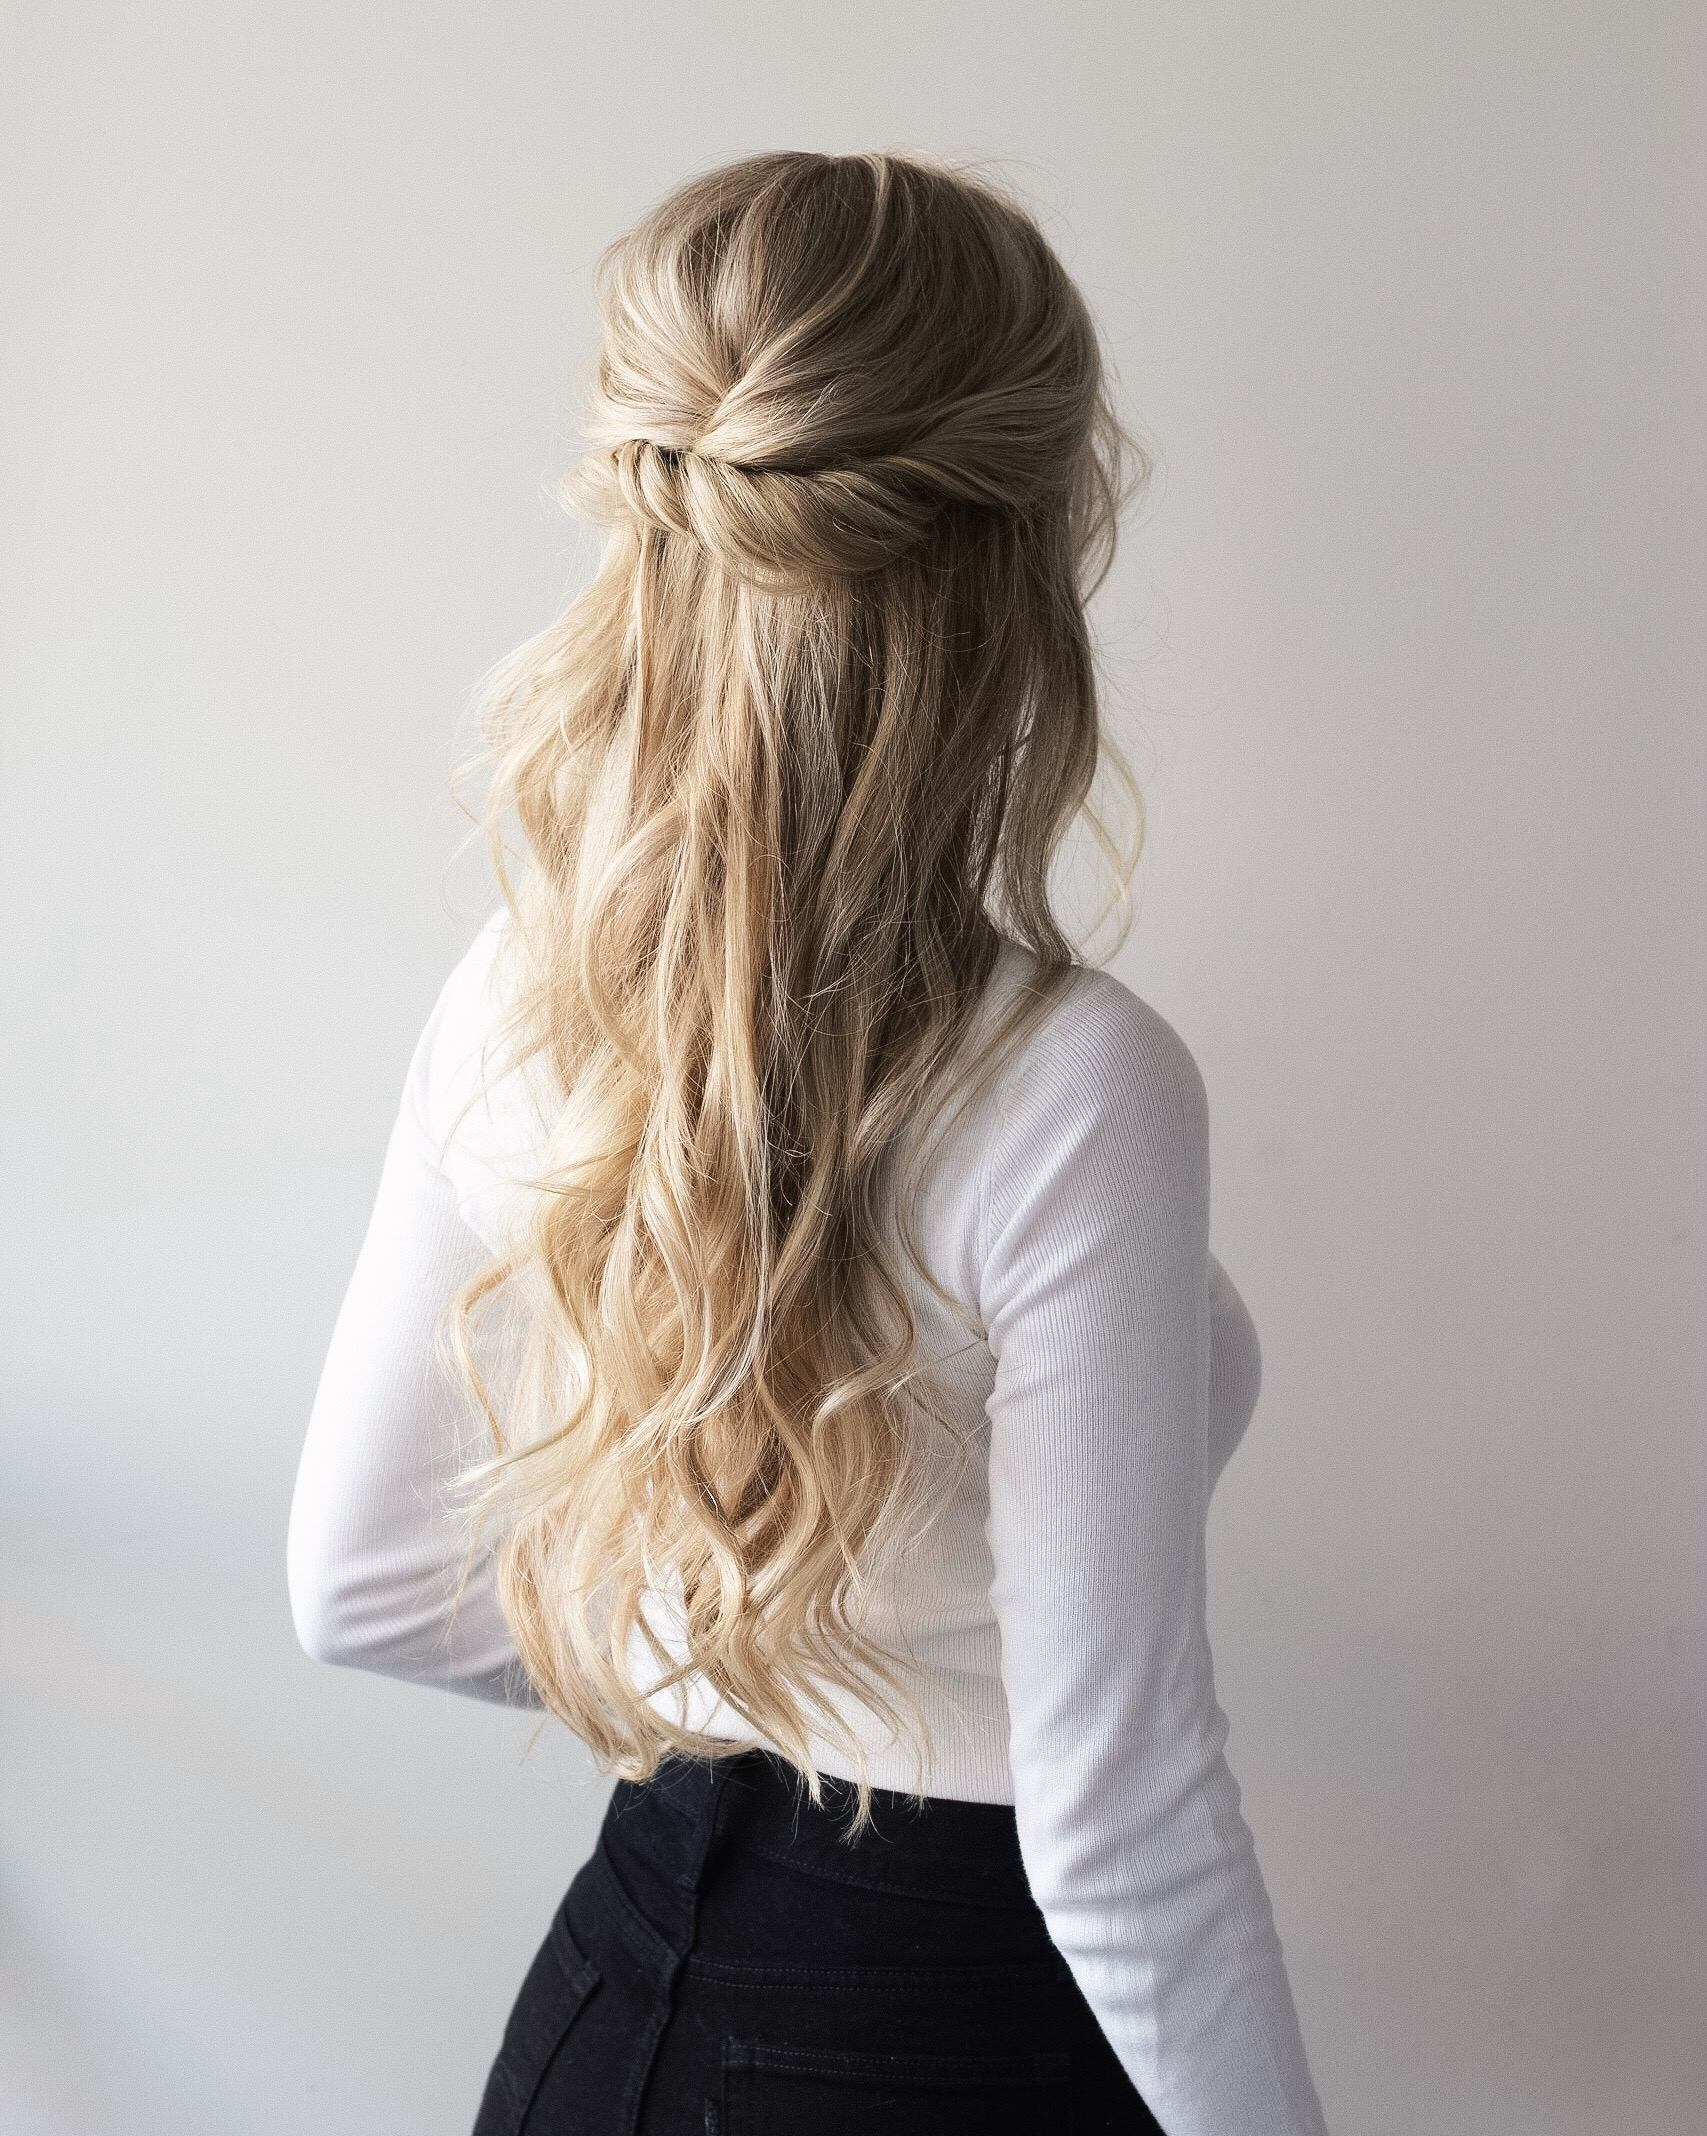 3 EASY 3 MINUTE HAIRSTYLES FOR 2019 | www.alexgaboury.com